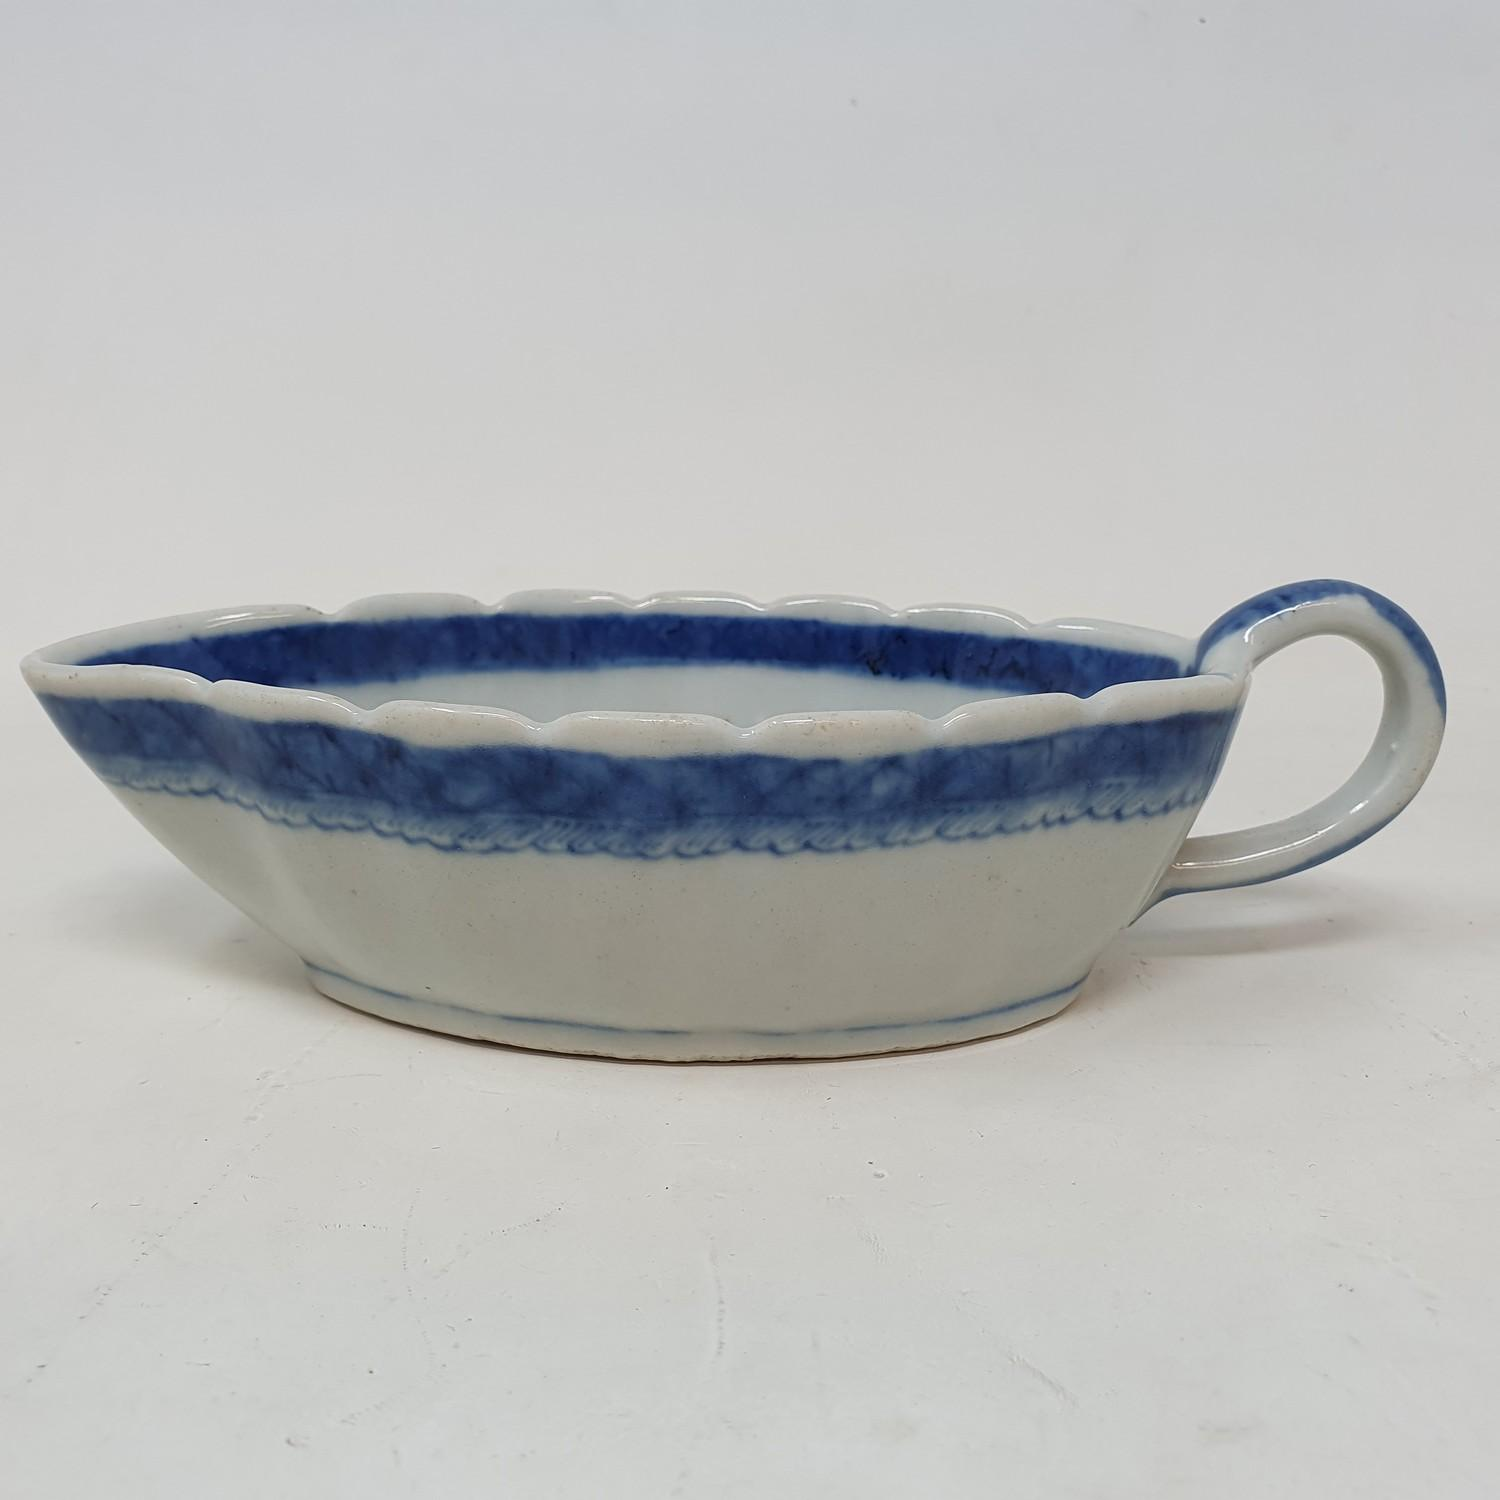 A Chinese blue and white sauceboat, 20 cm wide